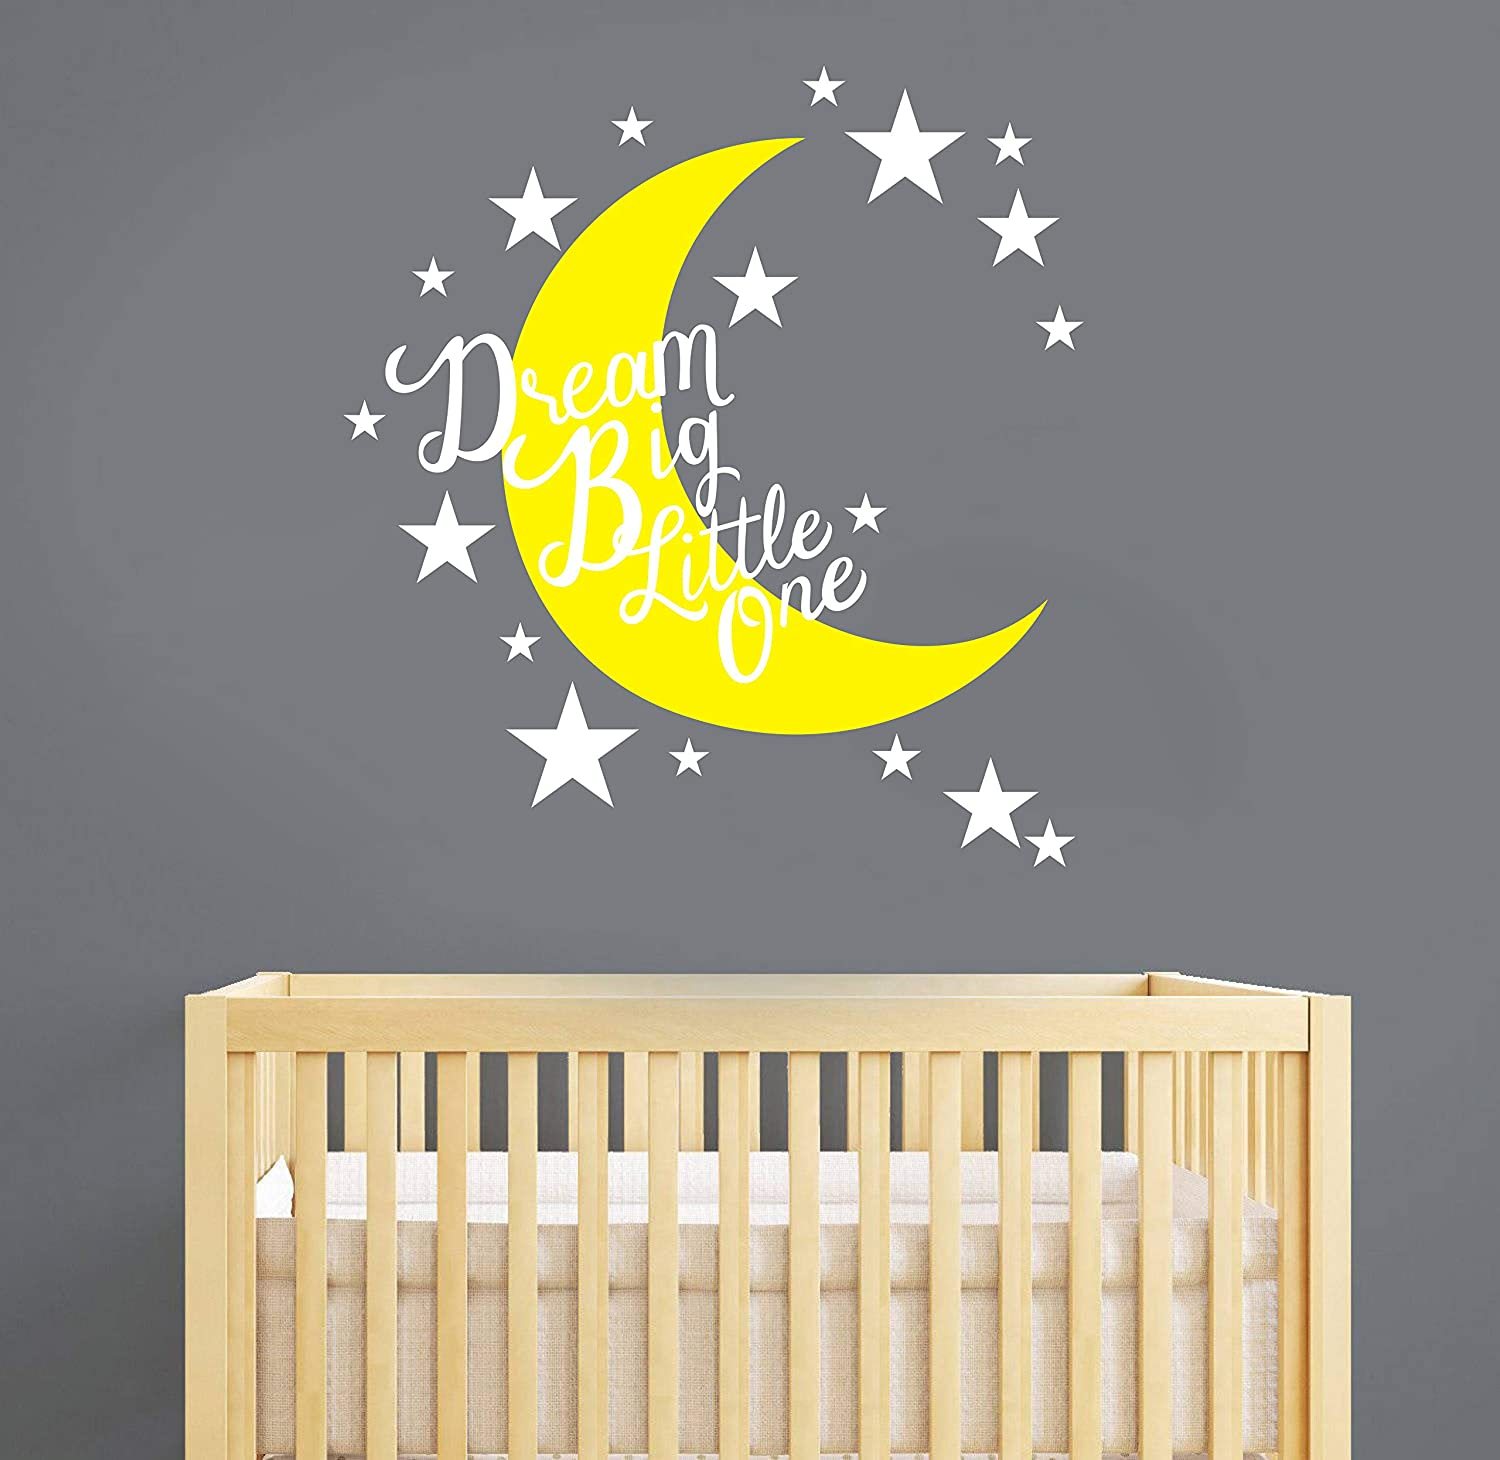 Amazon Com Moon And Star Nursery Wall Decal Dream Big Little One Quote Wall Decals Vinyl Wall Stickers For Baby Kids Boys Girls Bedroom Nursery Decor Y12 Yellow White Home Kitchen